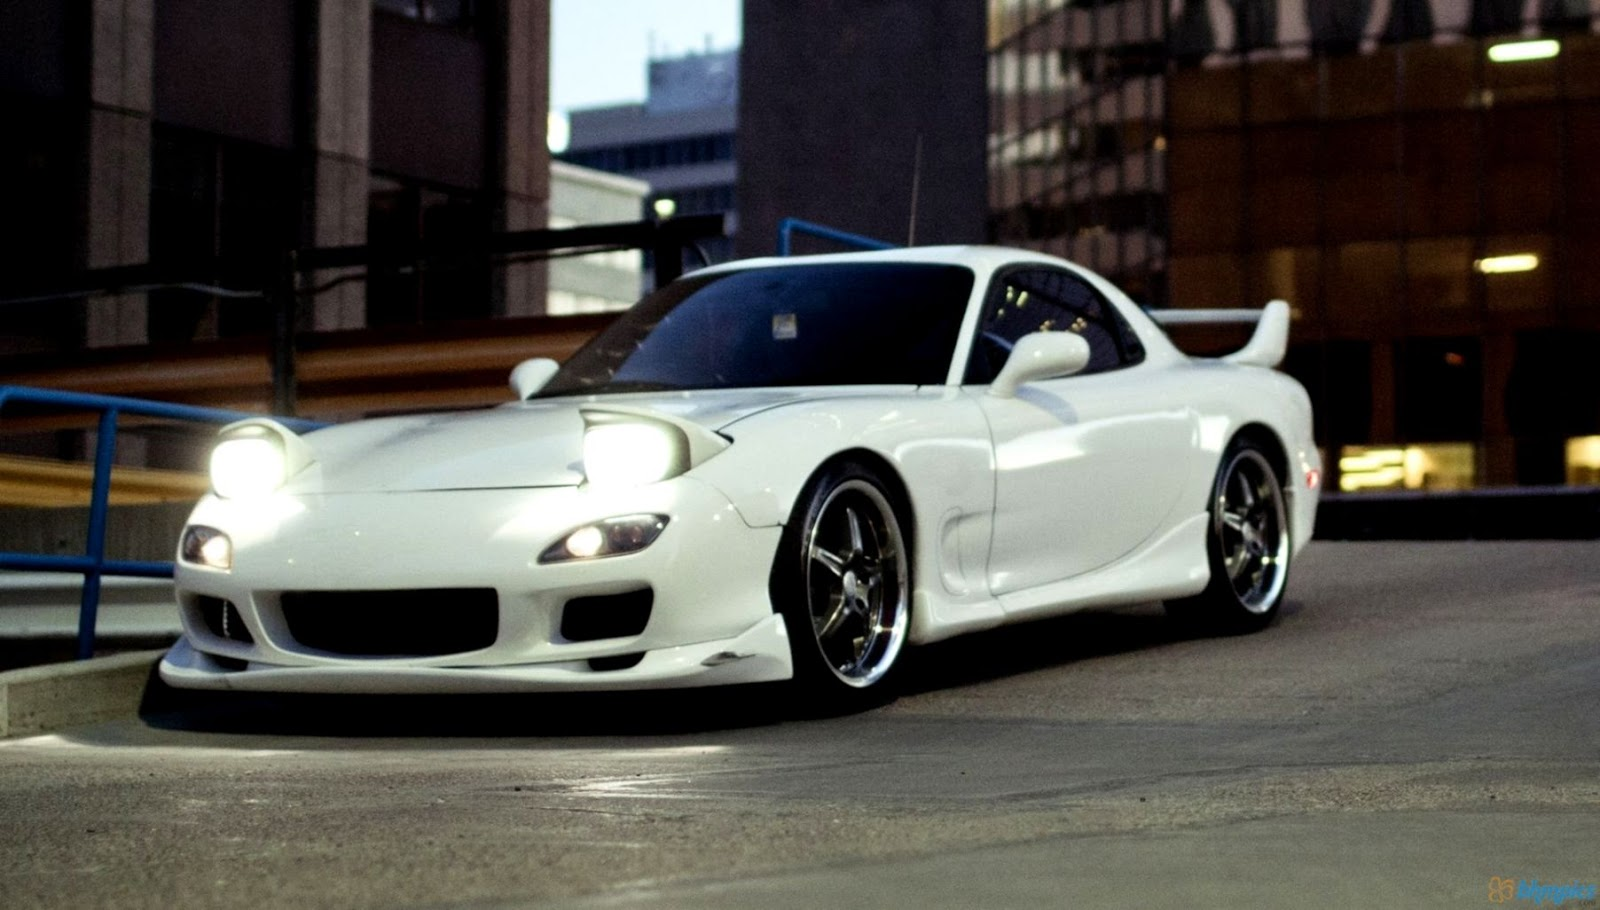 Mazda Build And Price >> Mazda Rx7 White Car Tuning Hd Wallpaper Wallpapers Ideas